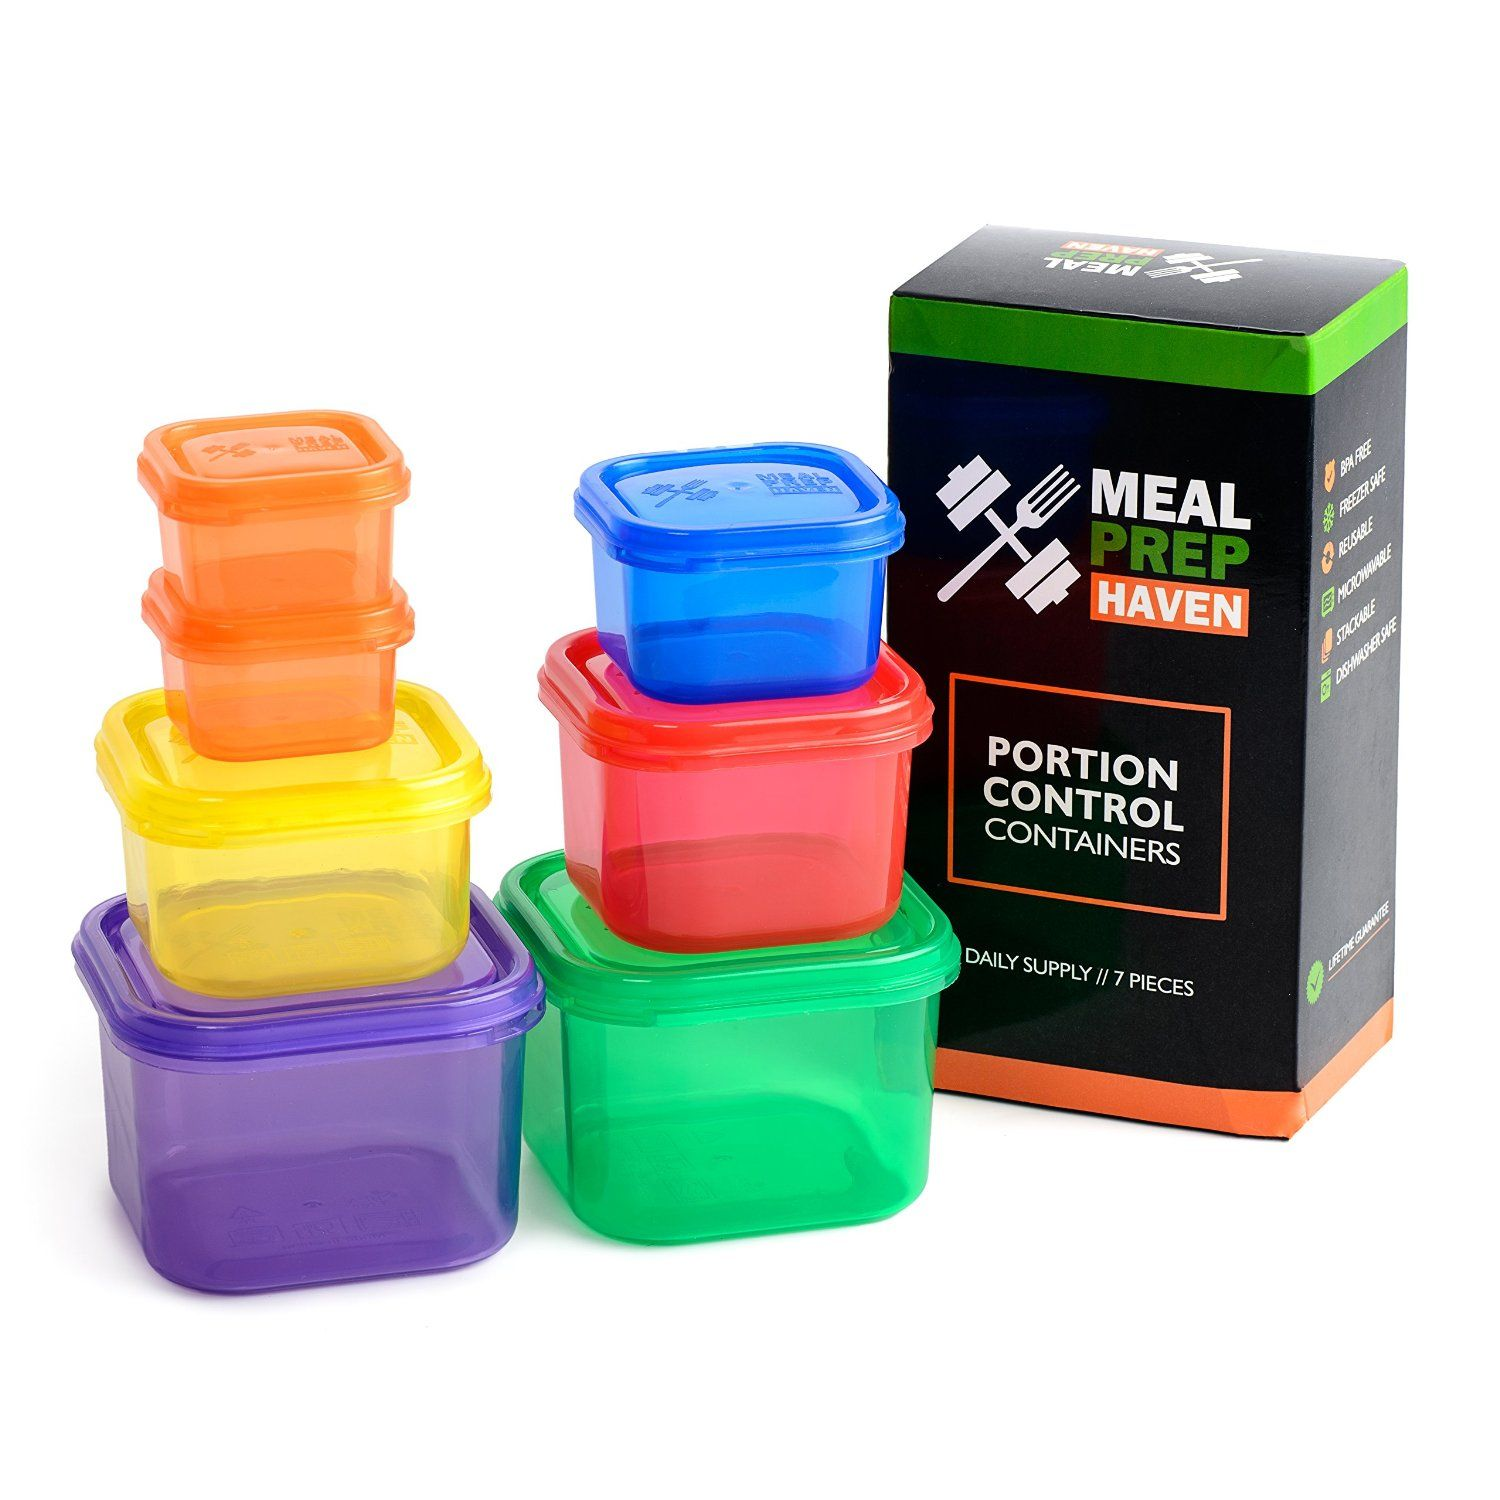 My 21 day fix review and containers sizes guide for portion control